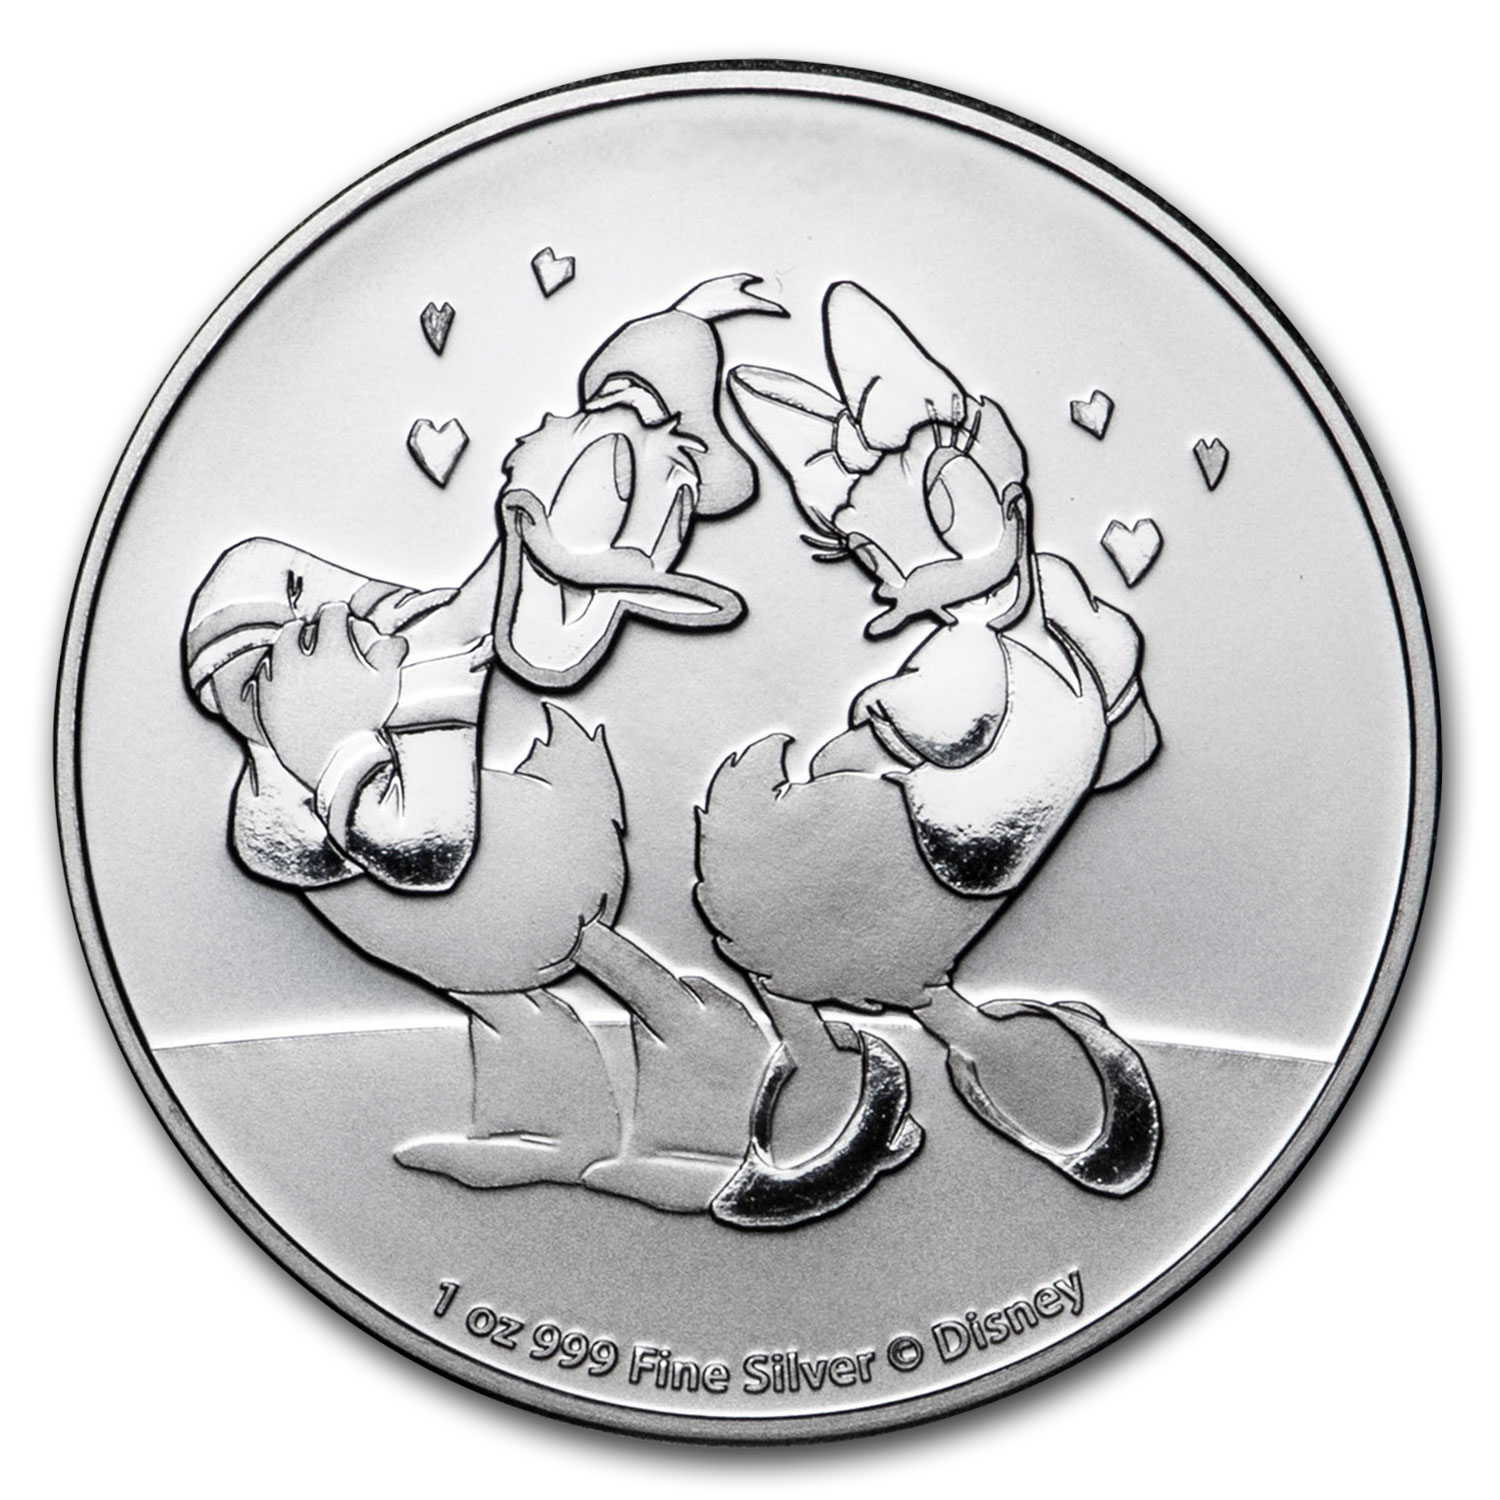 DISNEY DAISY AND DONALD LOVE CRAY COIN Silver Proof 2016 Niue $2-2017 #4753